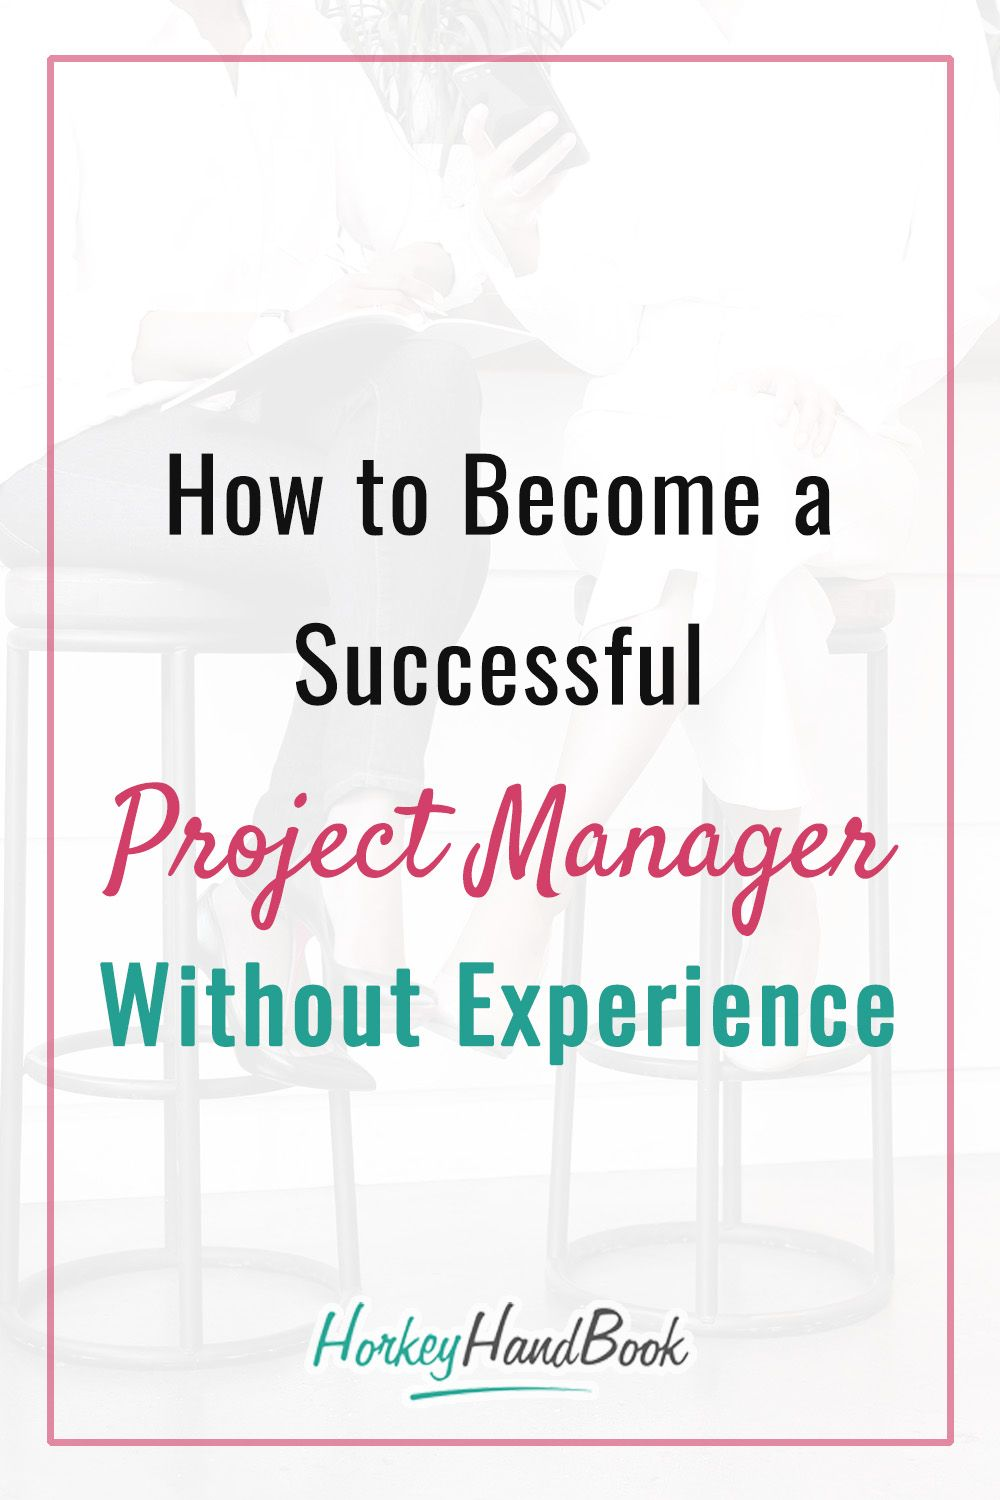 4 Steps to work as a project manager without experience